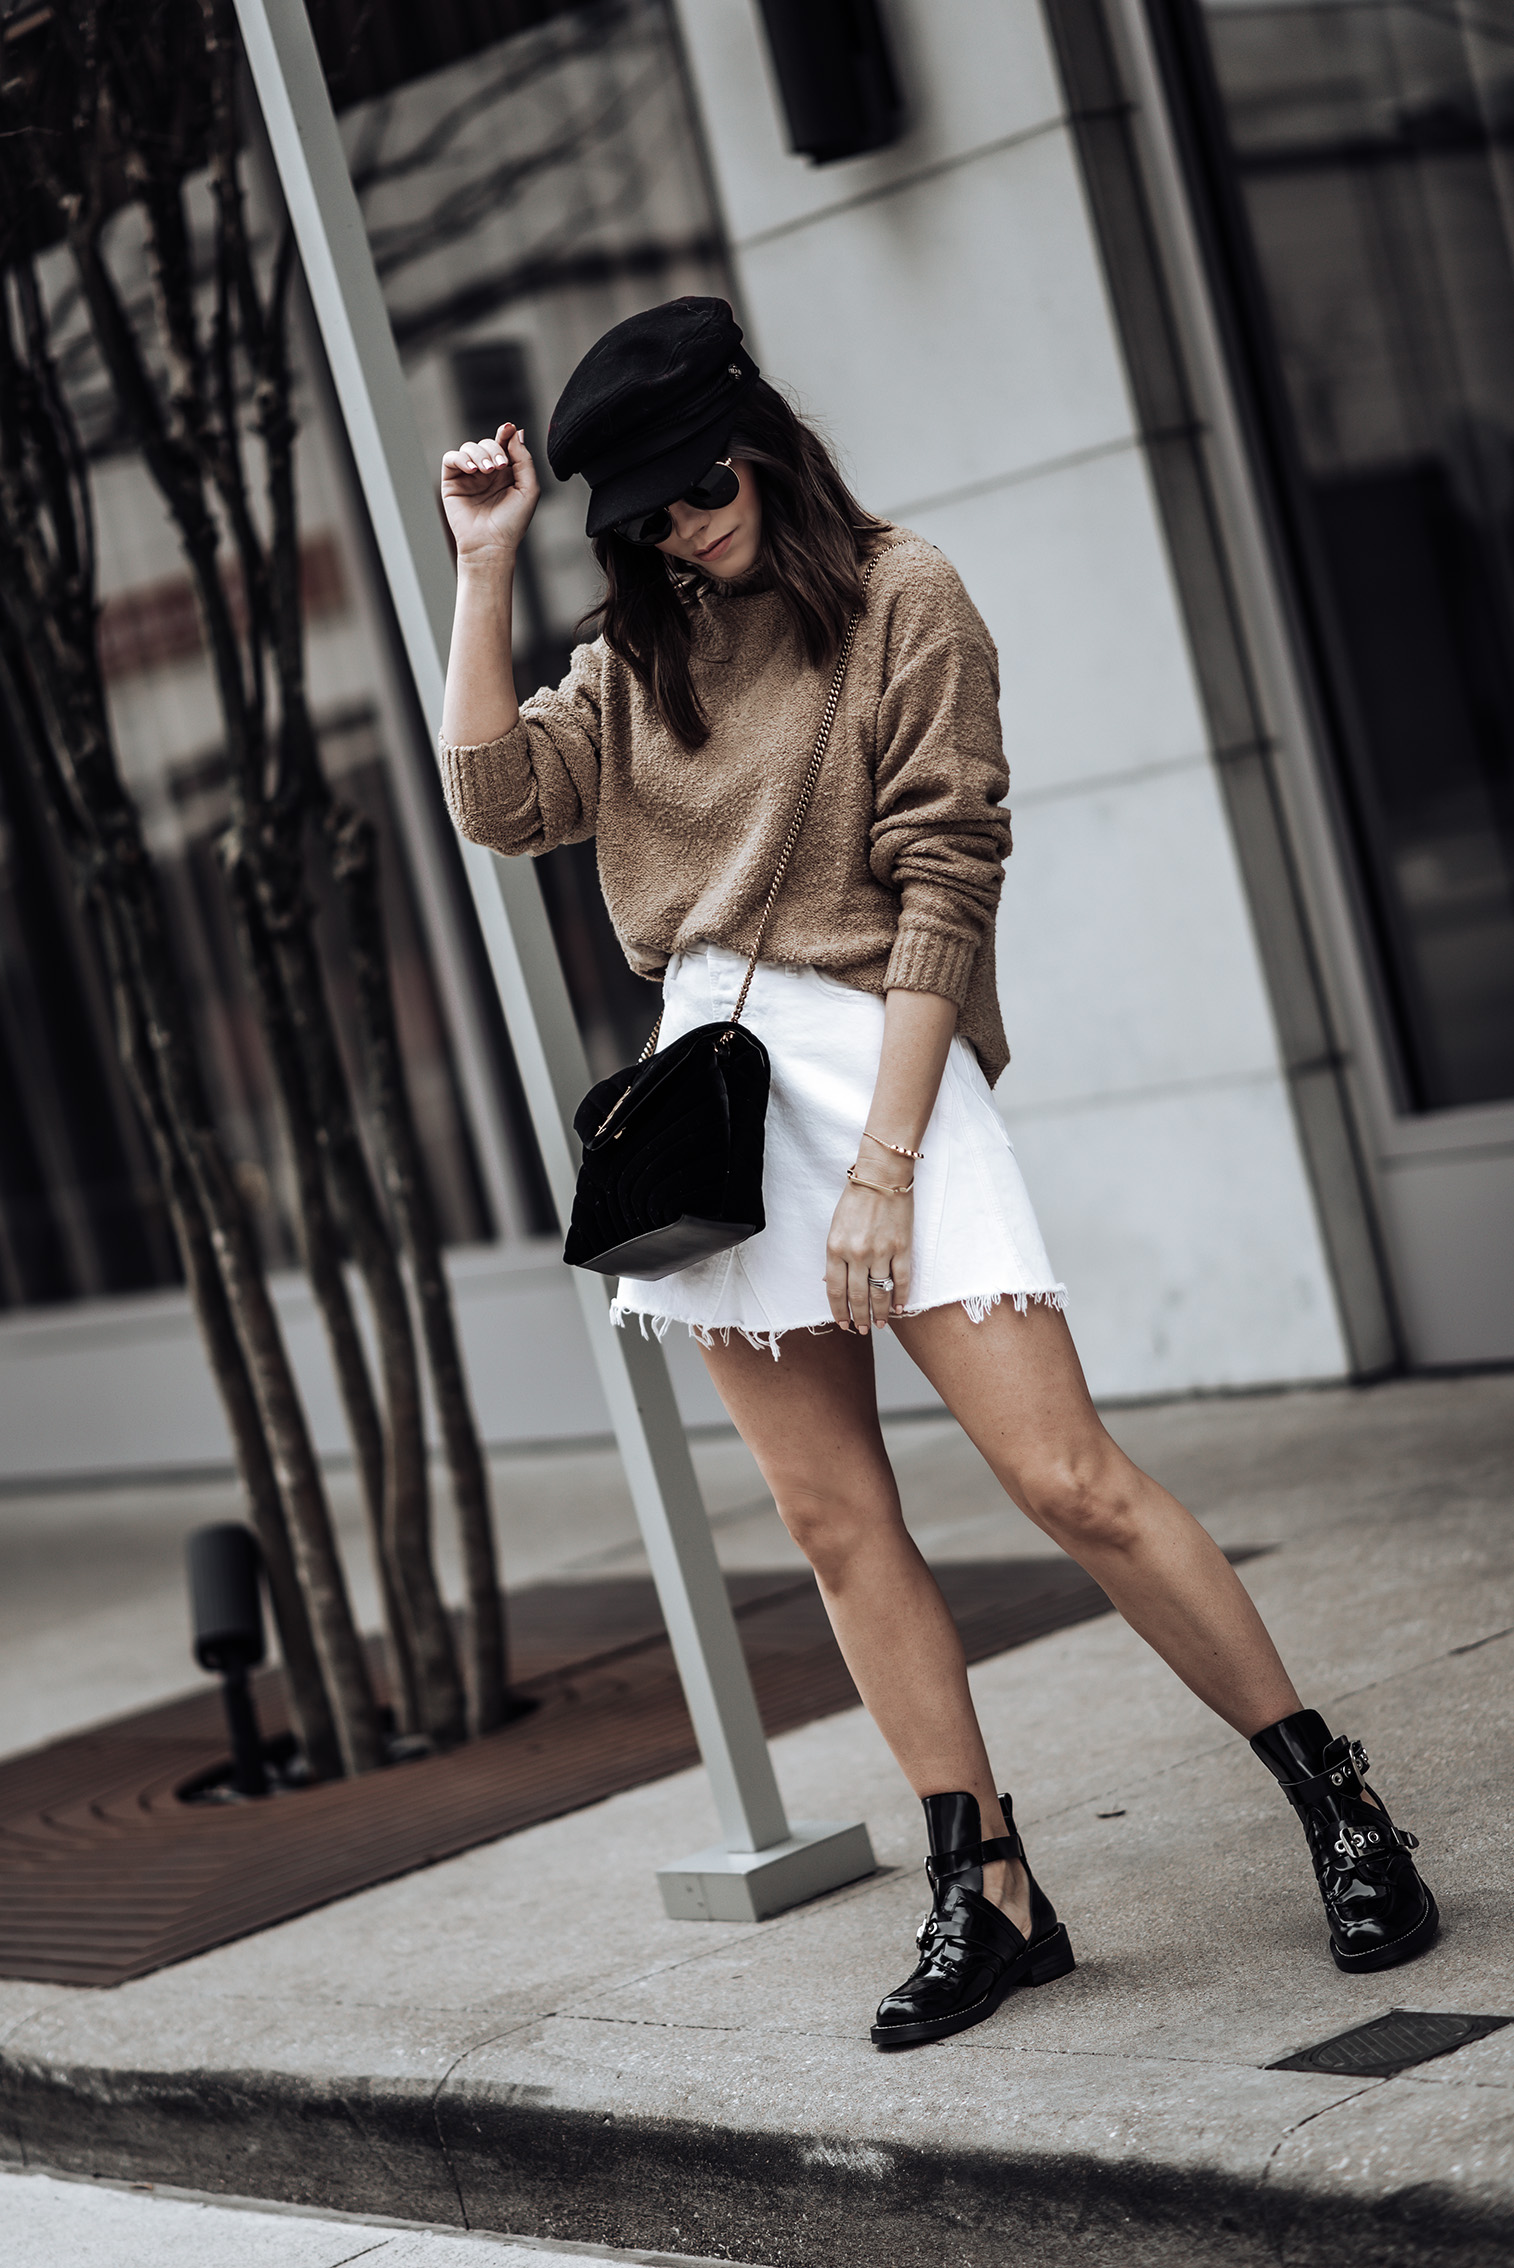 Combat boot trend | #streetstyle #blog #liketkit {C/O} GRLFRND Denim Eva A- Frame Skirt | {C/O} House of Harlow 1960 x REVOLVE Renee Pullover | Saint Laurent Small Black LouLou Velvet Bag | Bakers Cap (Similar) | Balenciaga boots Real vs. Steal)